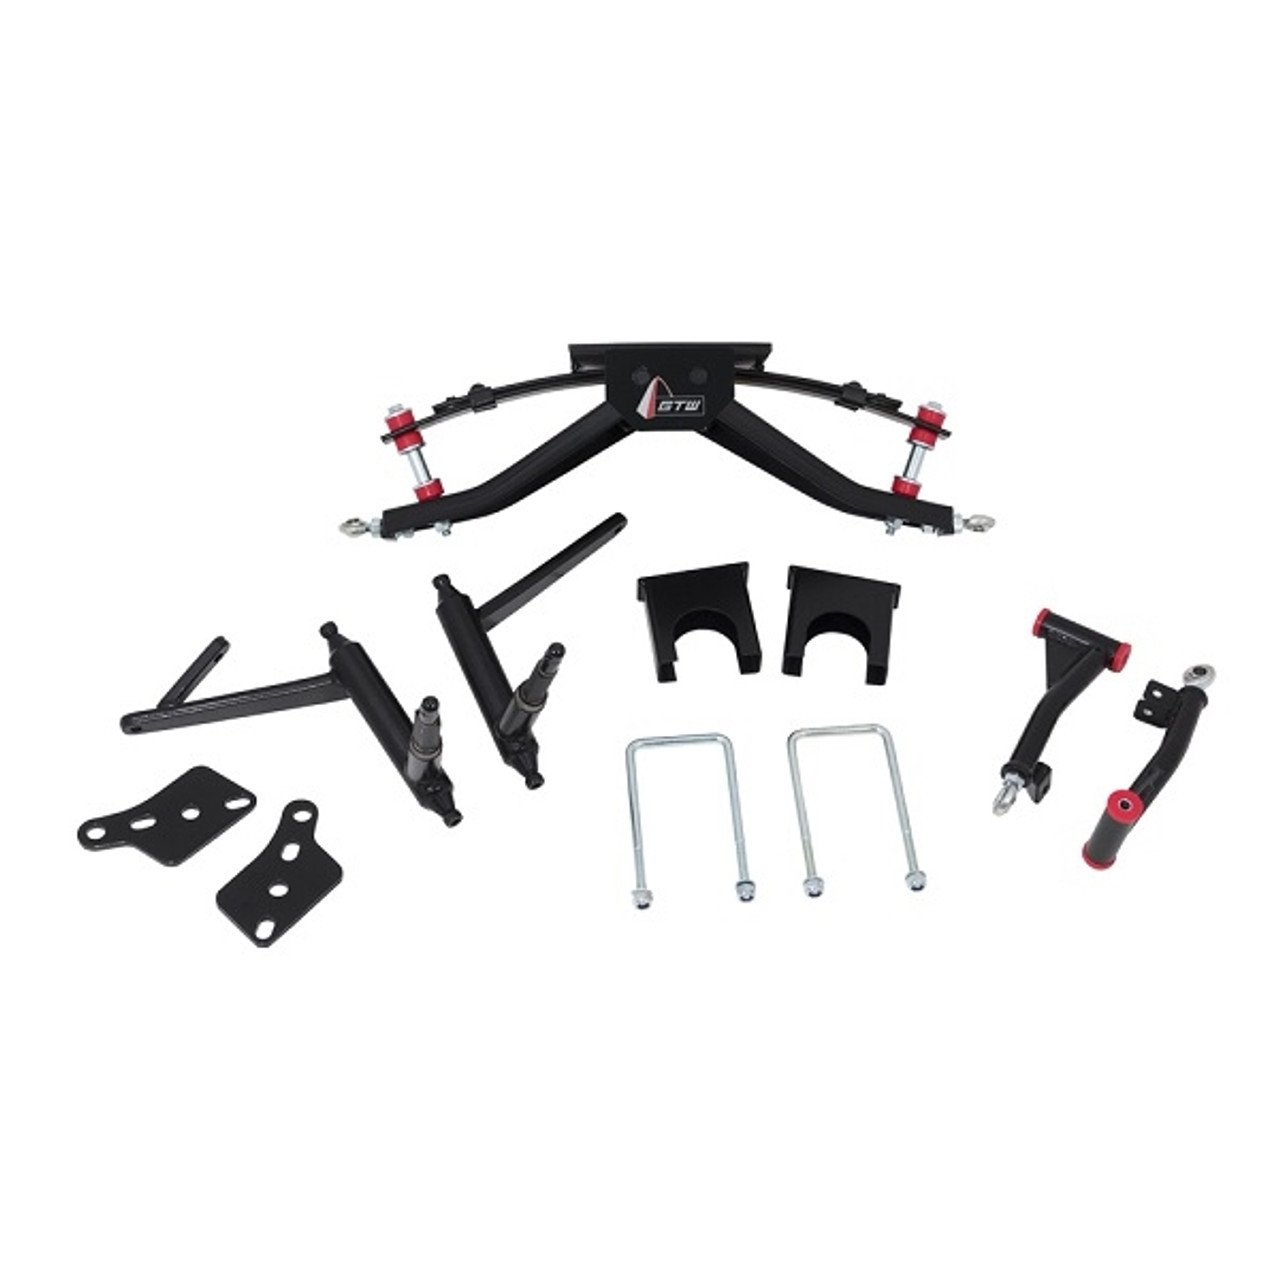 """GTW 6"""" Double A-Arm Lift Kit - Fits Club Car DS (2004.5-Up)"""